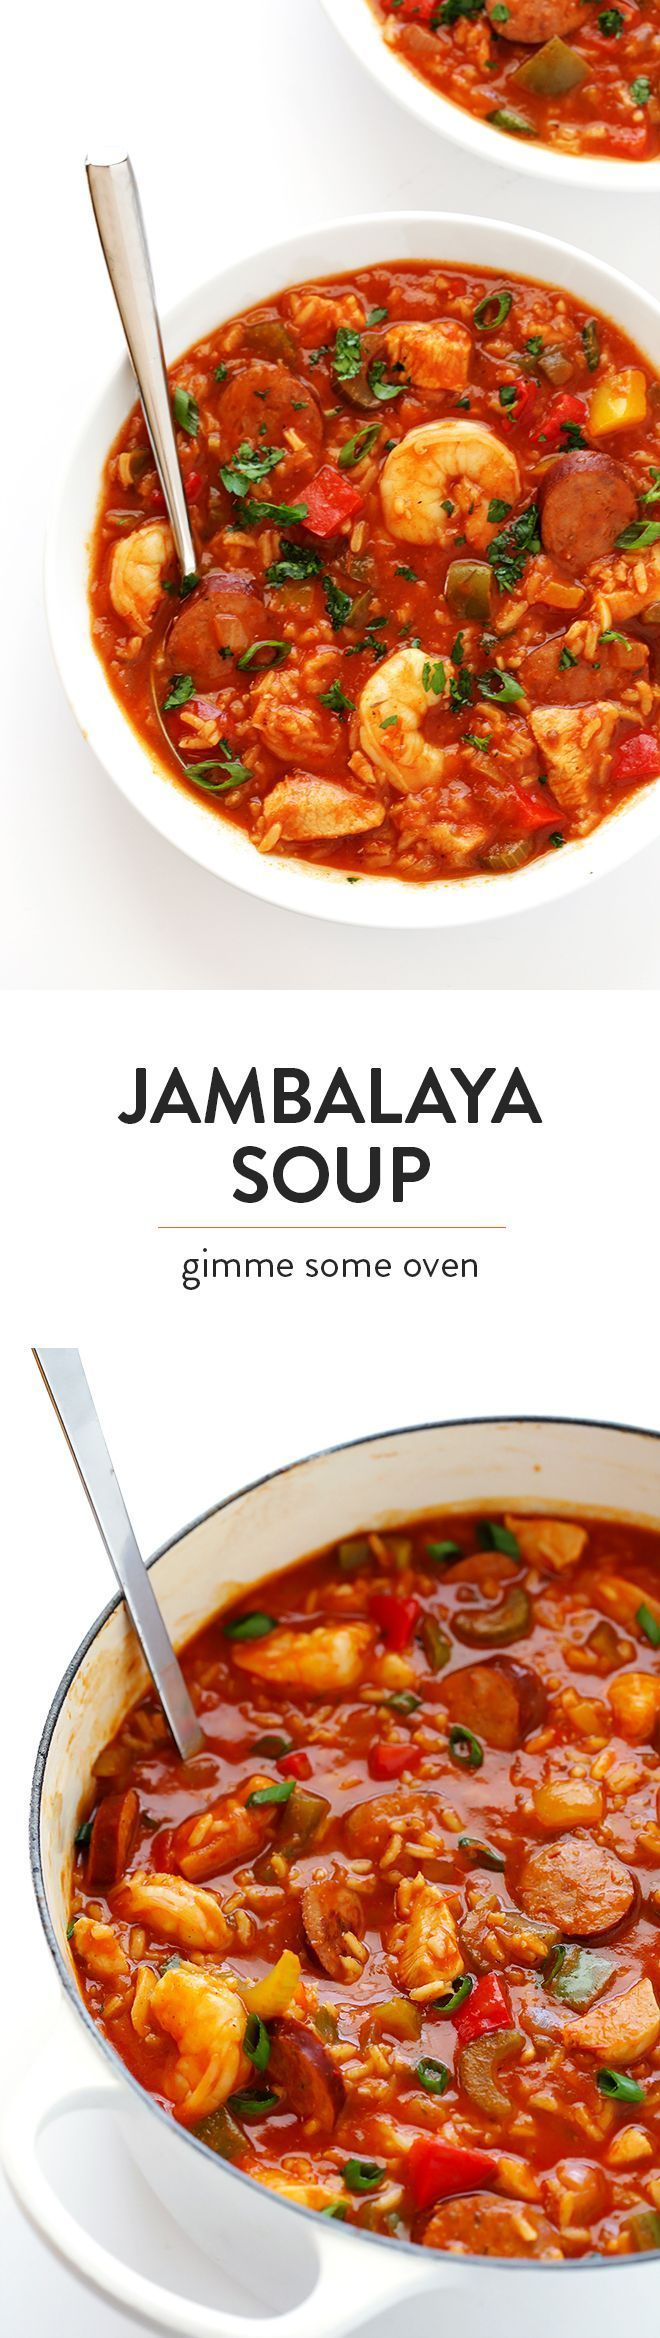 222 Best Seafood Soups Images On Pinterest Fish Soup Seafood Soup And Cooking Recipes